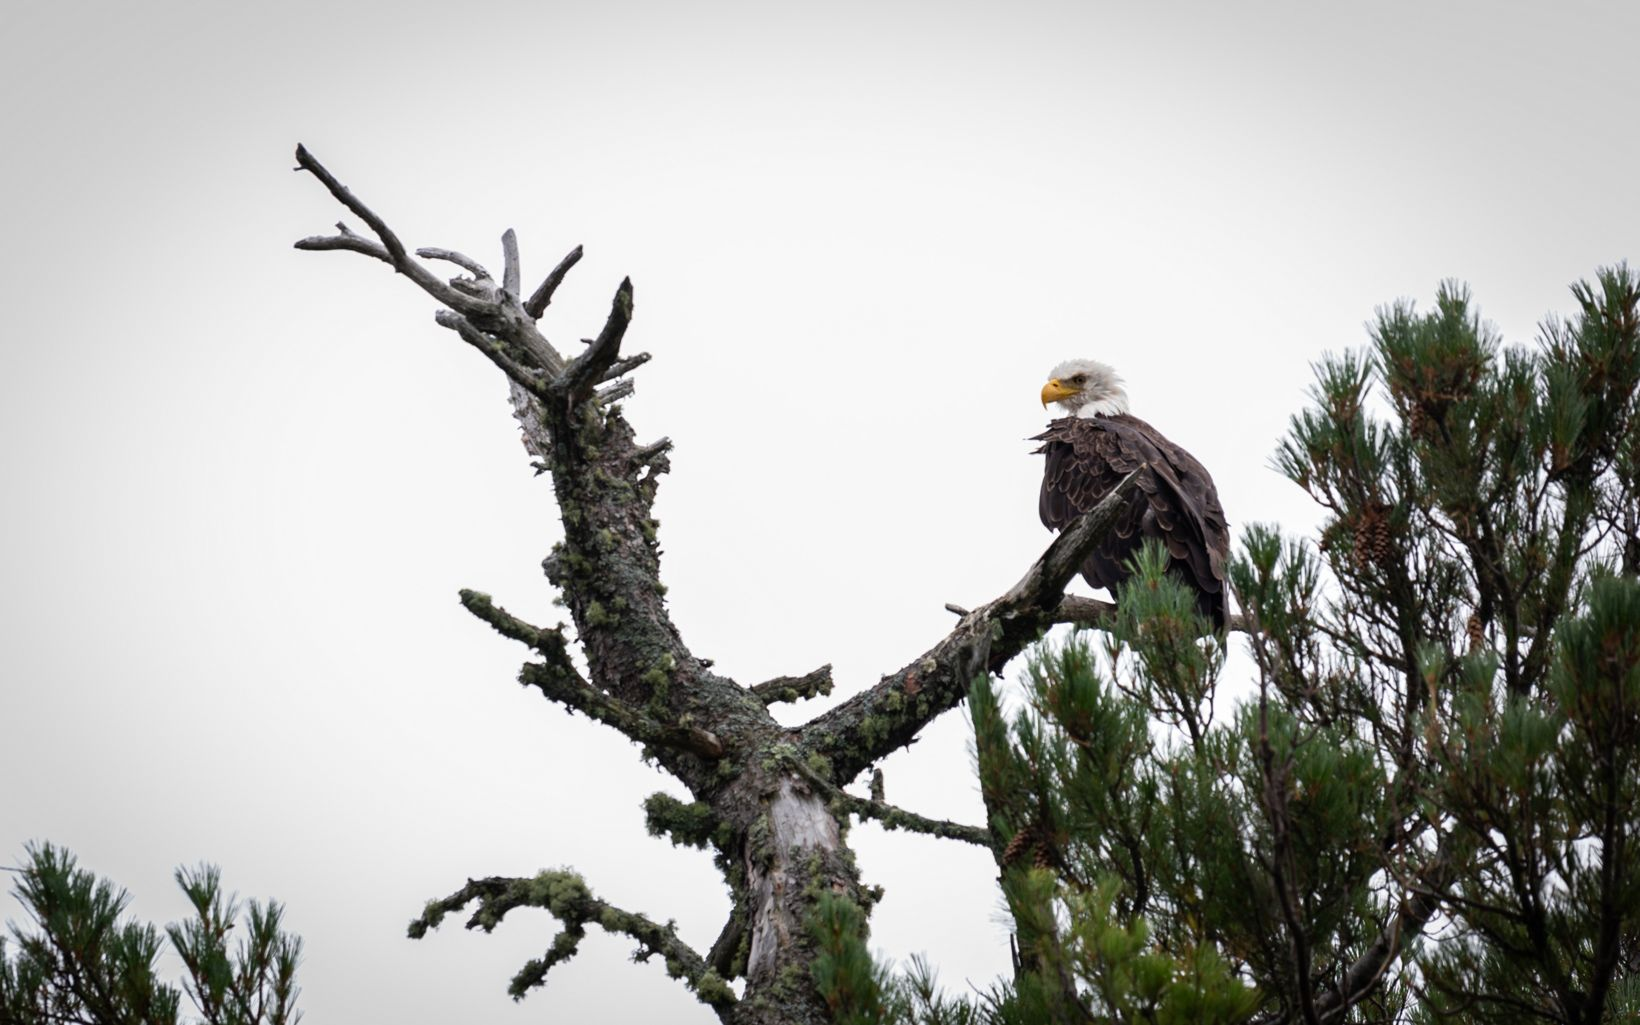 A bald eagle perches at the top of a tree in front of gray skies.